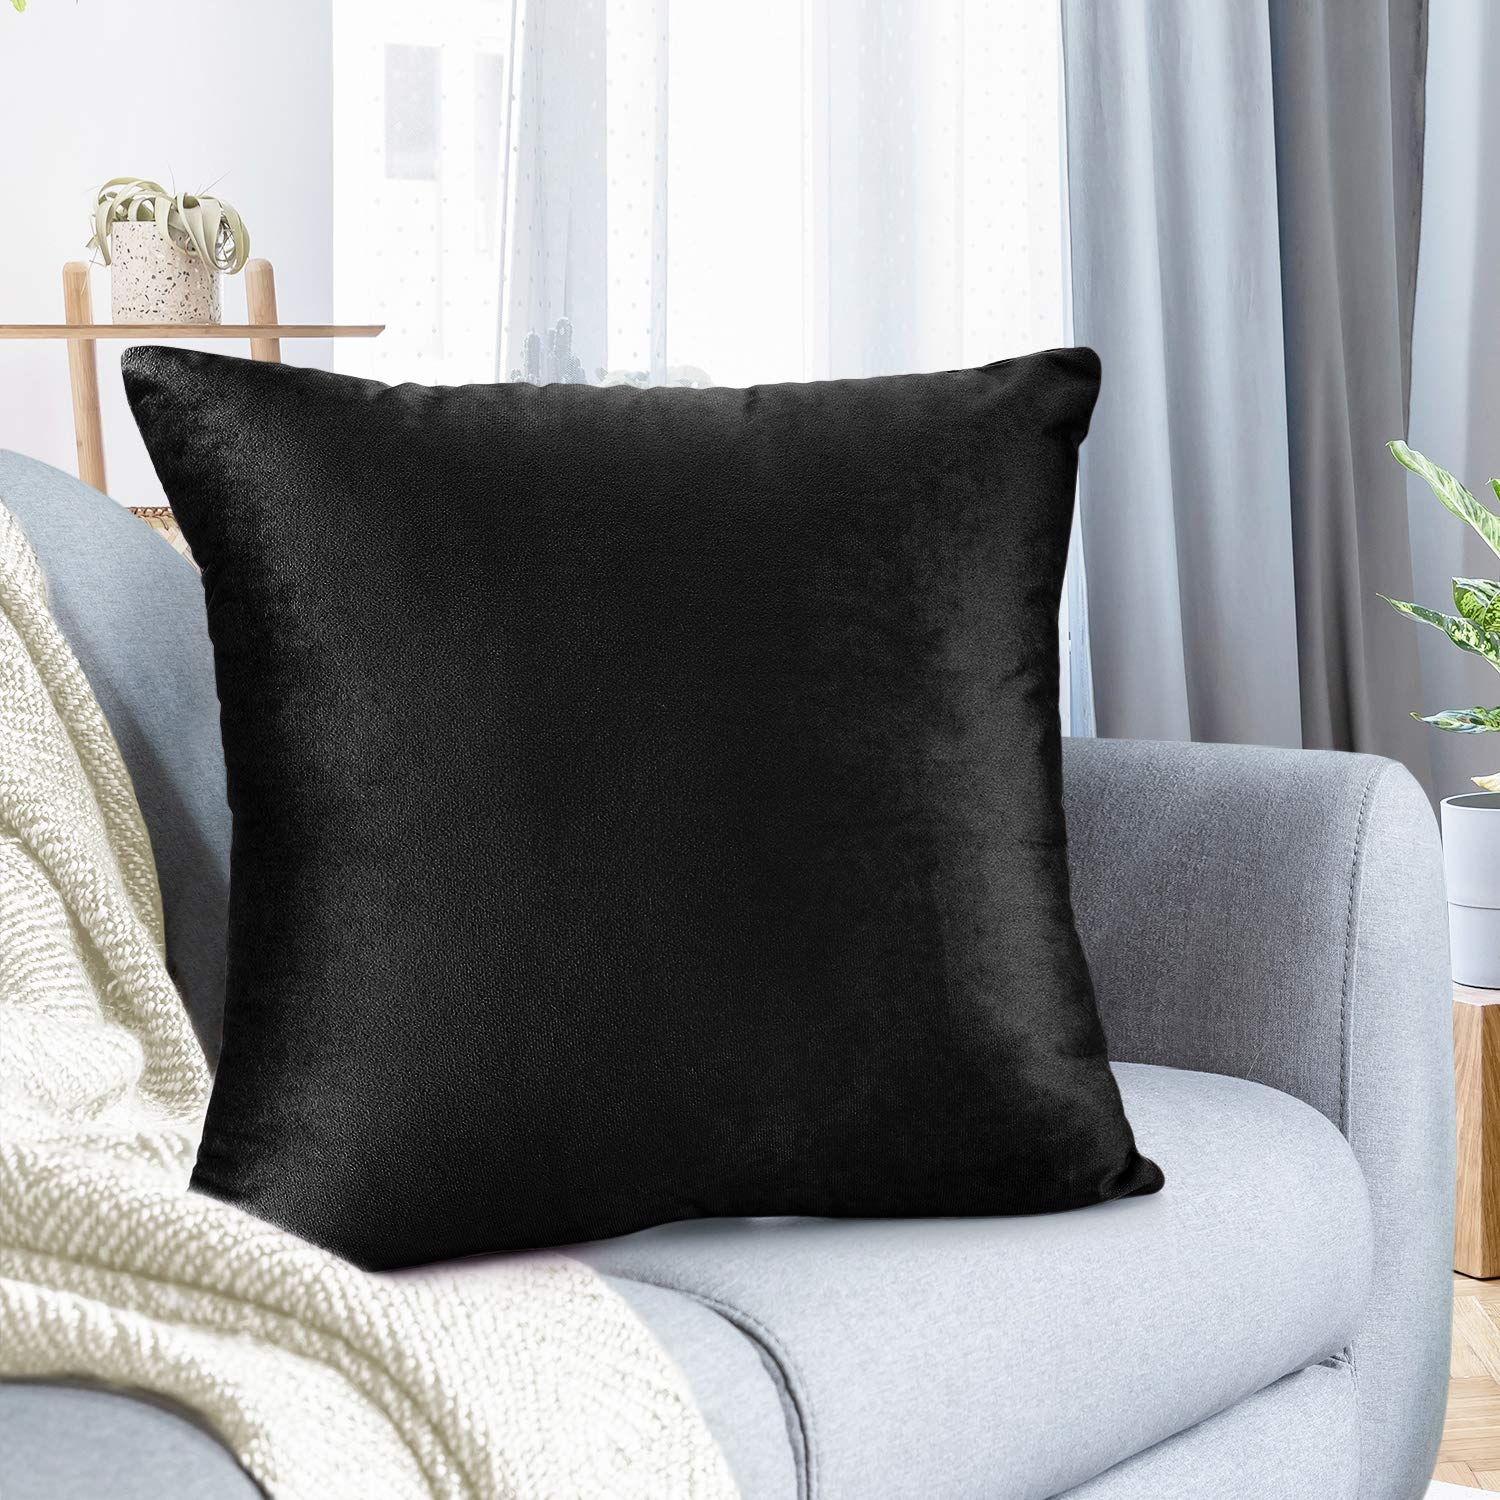 """Nestl Bedding Throw Pillow Cover 24"""" x 24"""" Soft Square Decorative Throw Pillow Covers Cozy Velvet Cushion Case for Sofa Couch Bedroom - Black"""